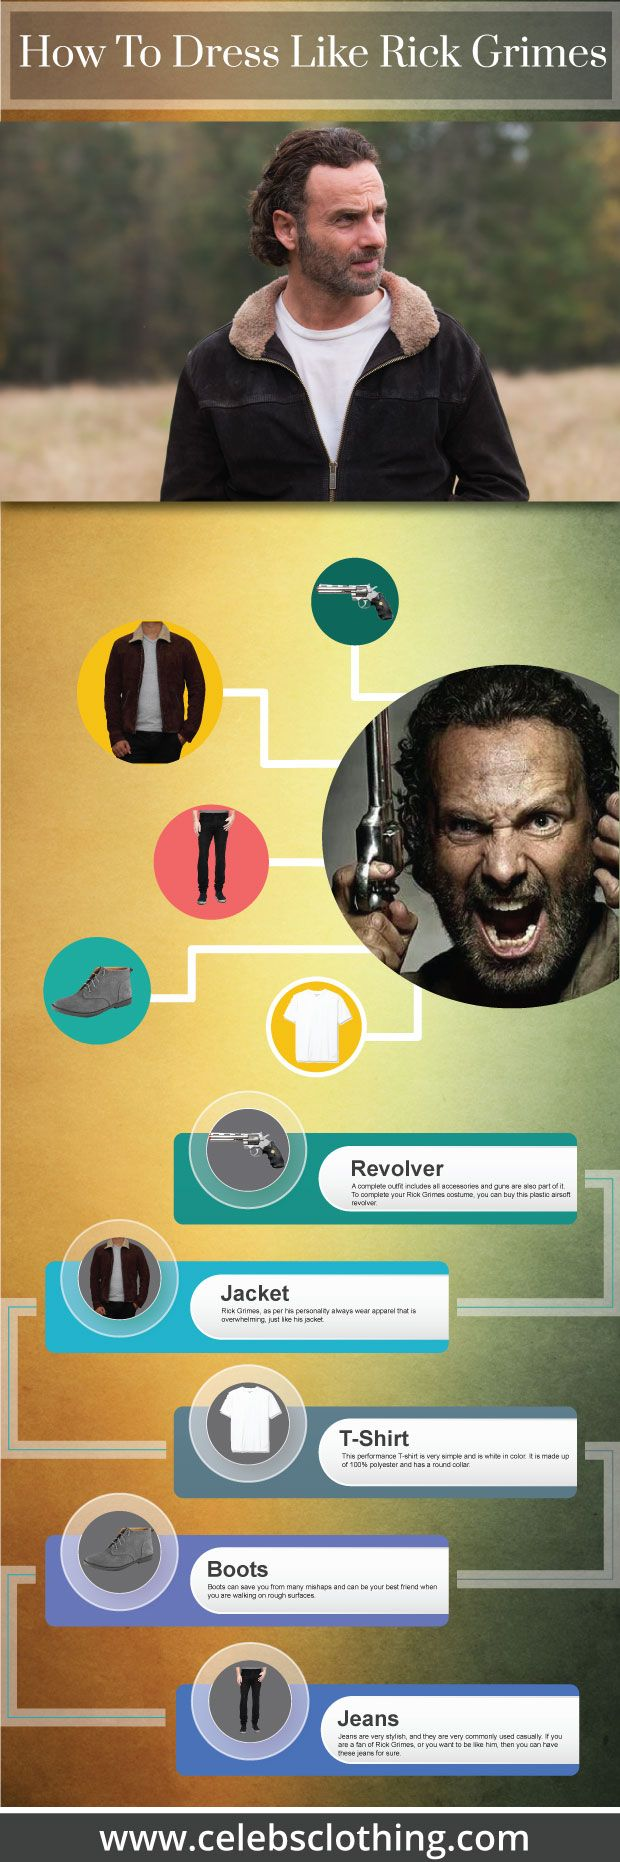 The Walking Dead Rick Grimes Costume Guide with Info-graphics.